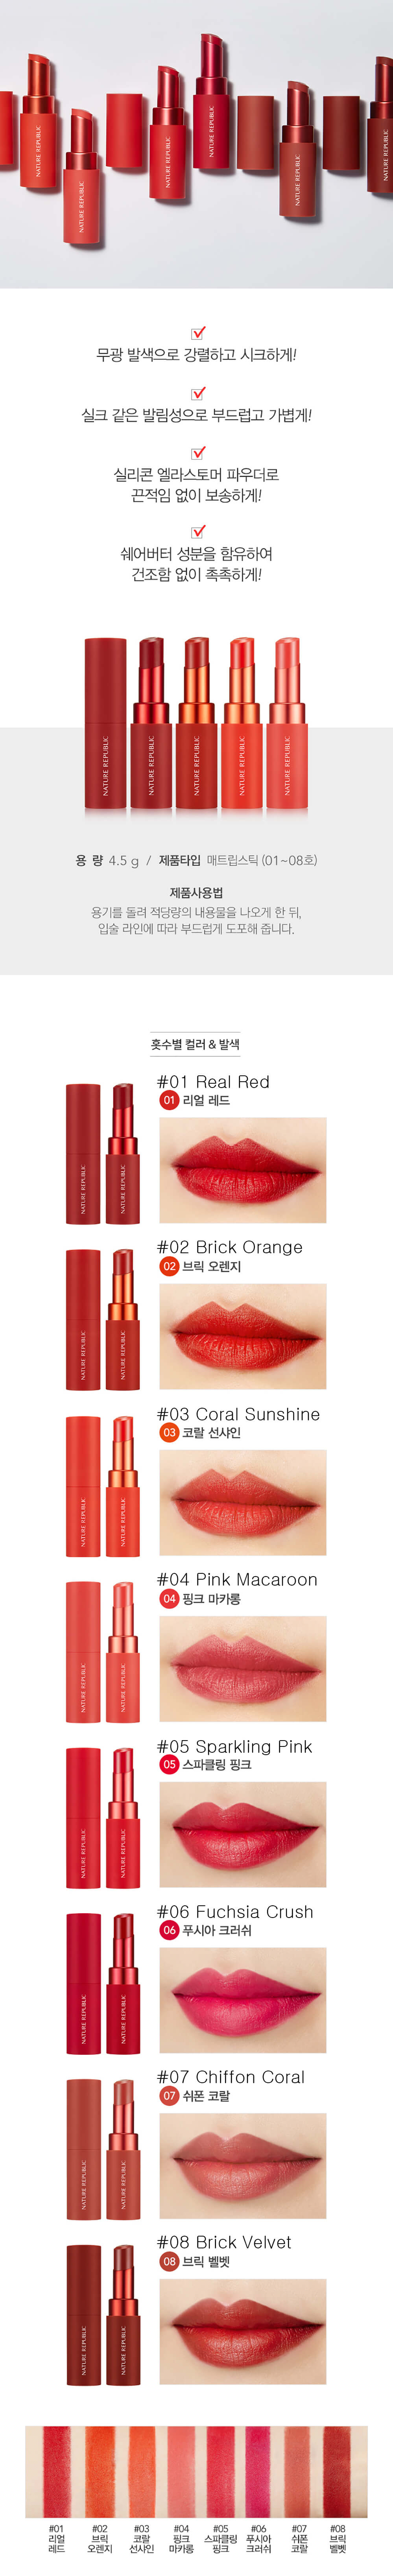 NATURE REPUBLIC Real Matte Lipstick [03 Coral Sunshine]